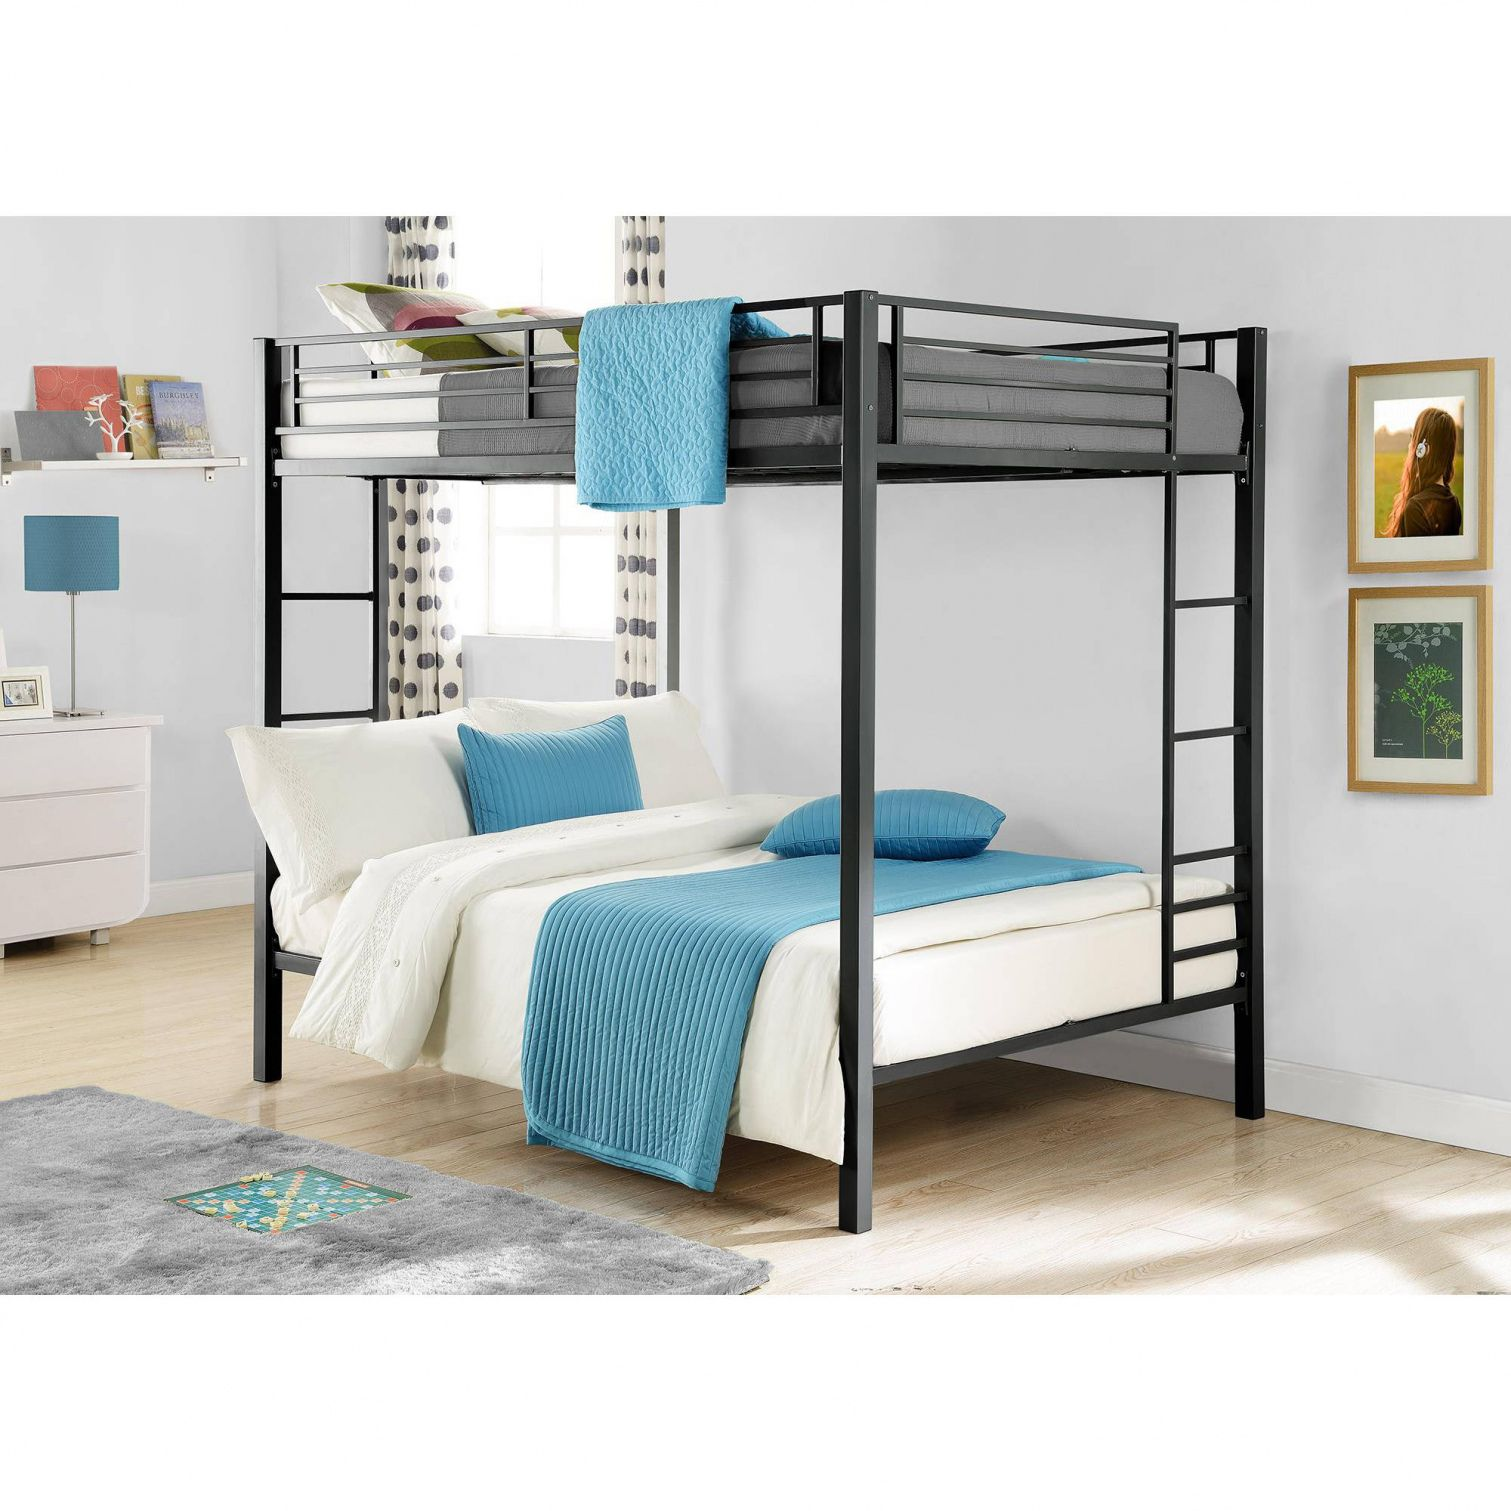 Walmart Kids Bunk Beds Most Popular Interior Paint Colors Check - Walmart girl bedroom furniture